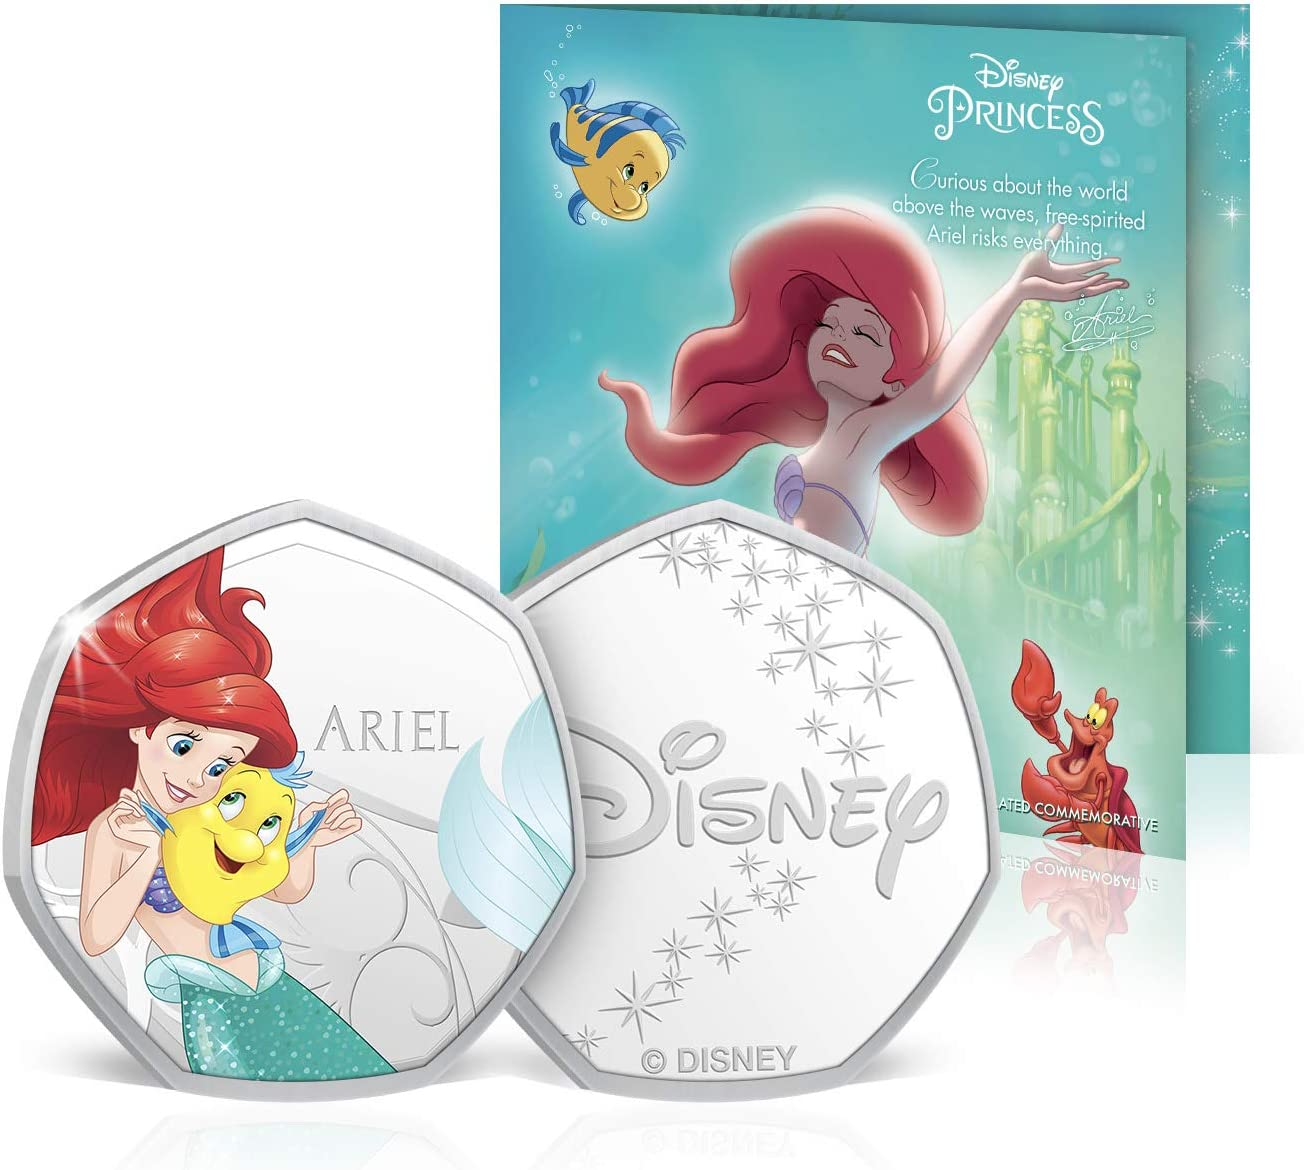 Disney Princess Birthday Card Gifts Present Blank Card with 50p Shaped Keepsake Coin Included Aurora